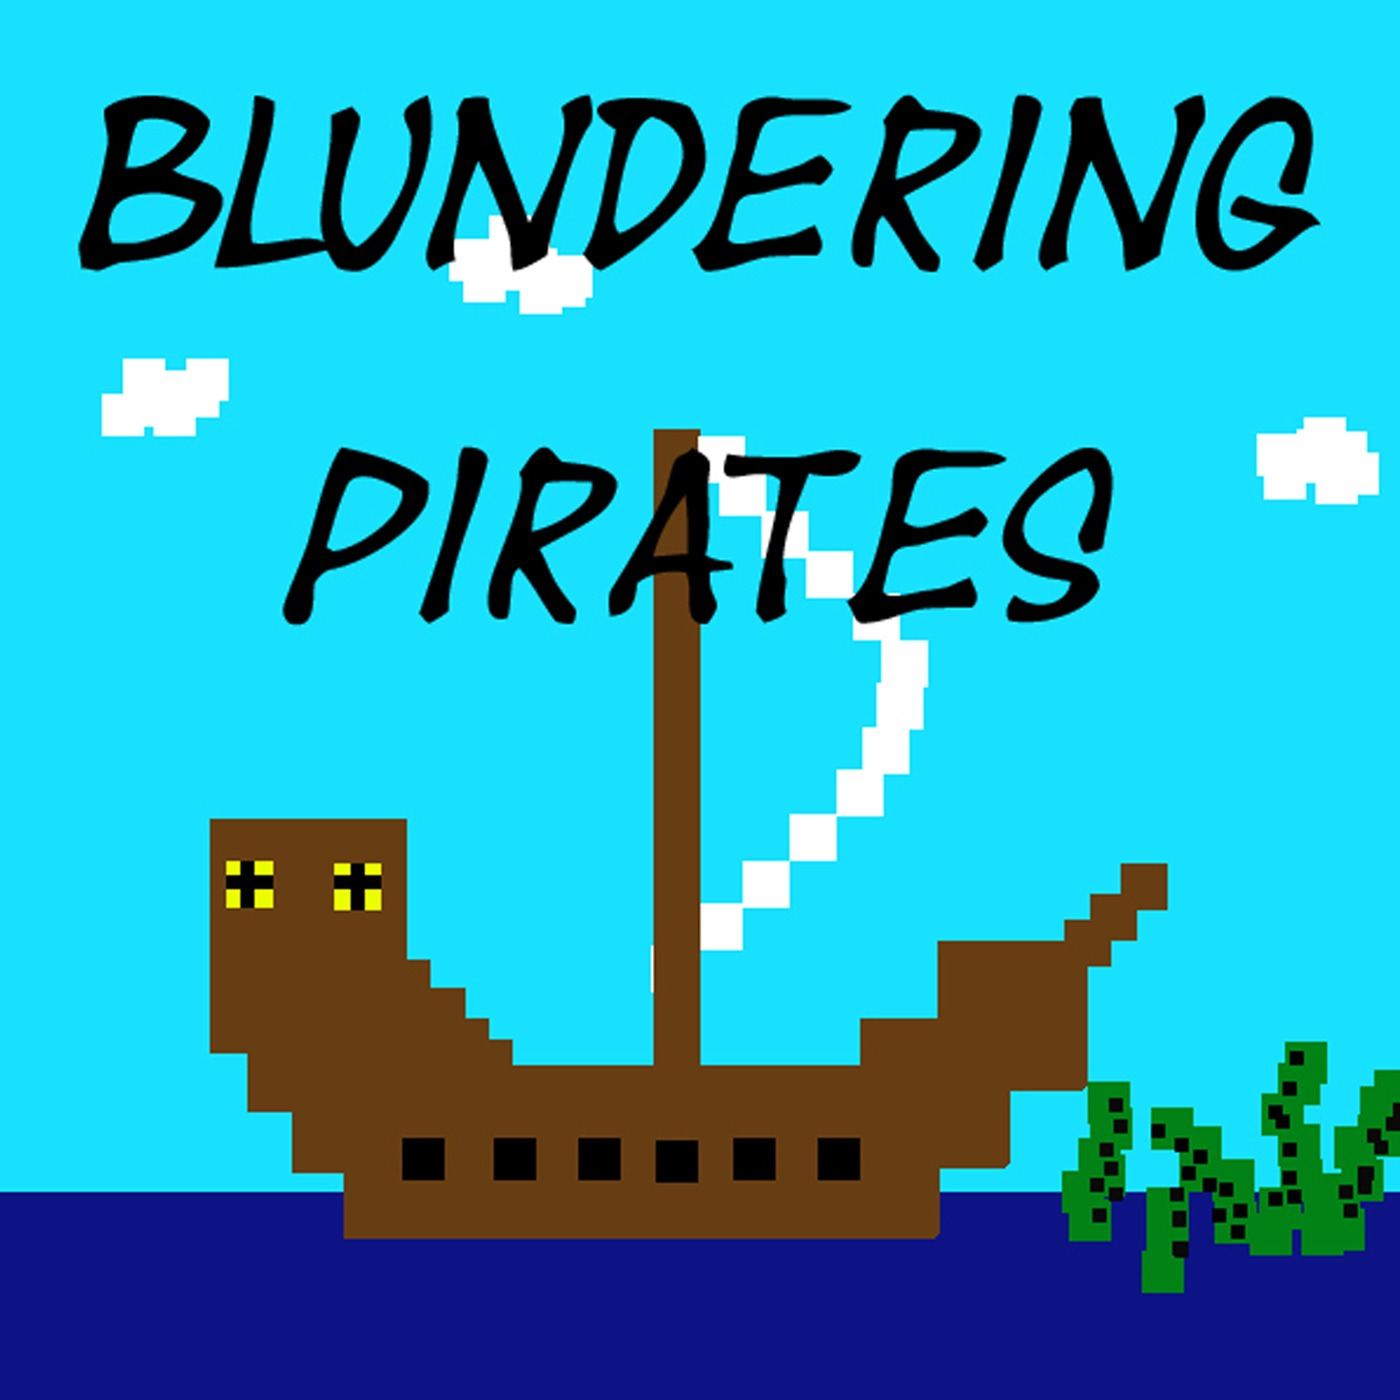 The Blundering Pirates